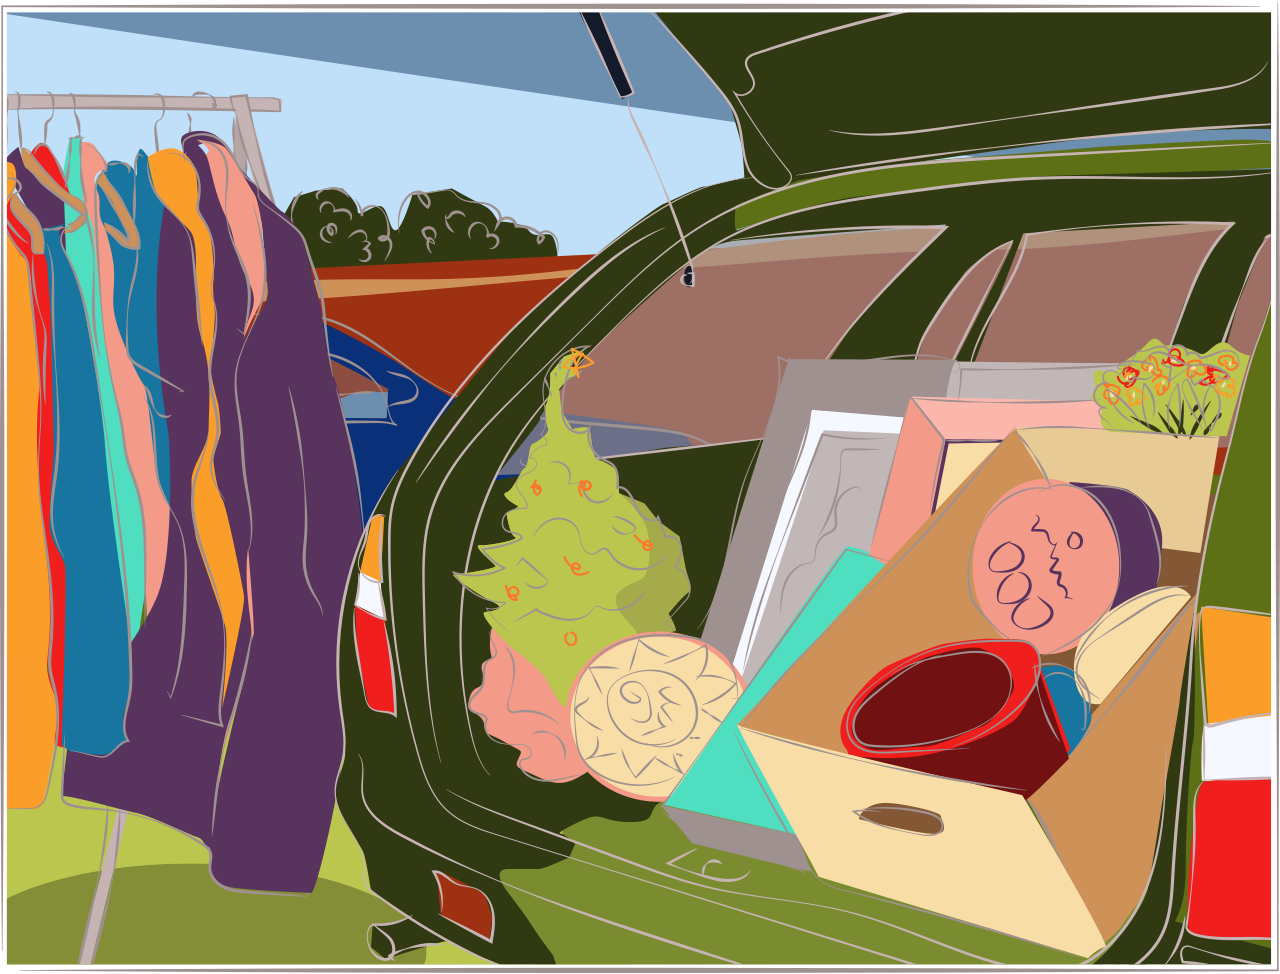 Illustration of a car boot sale